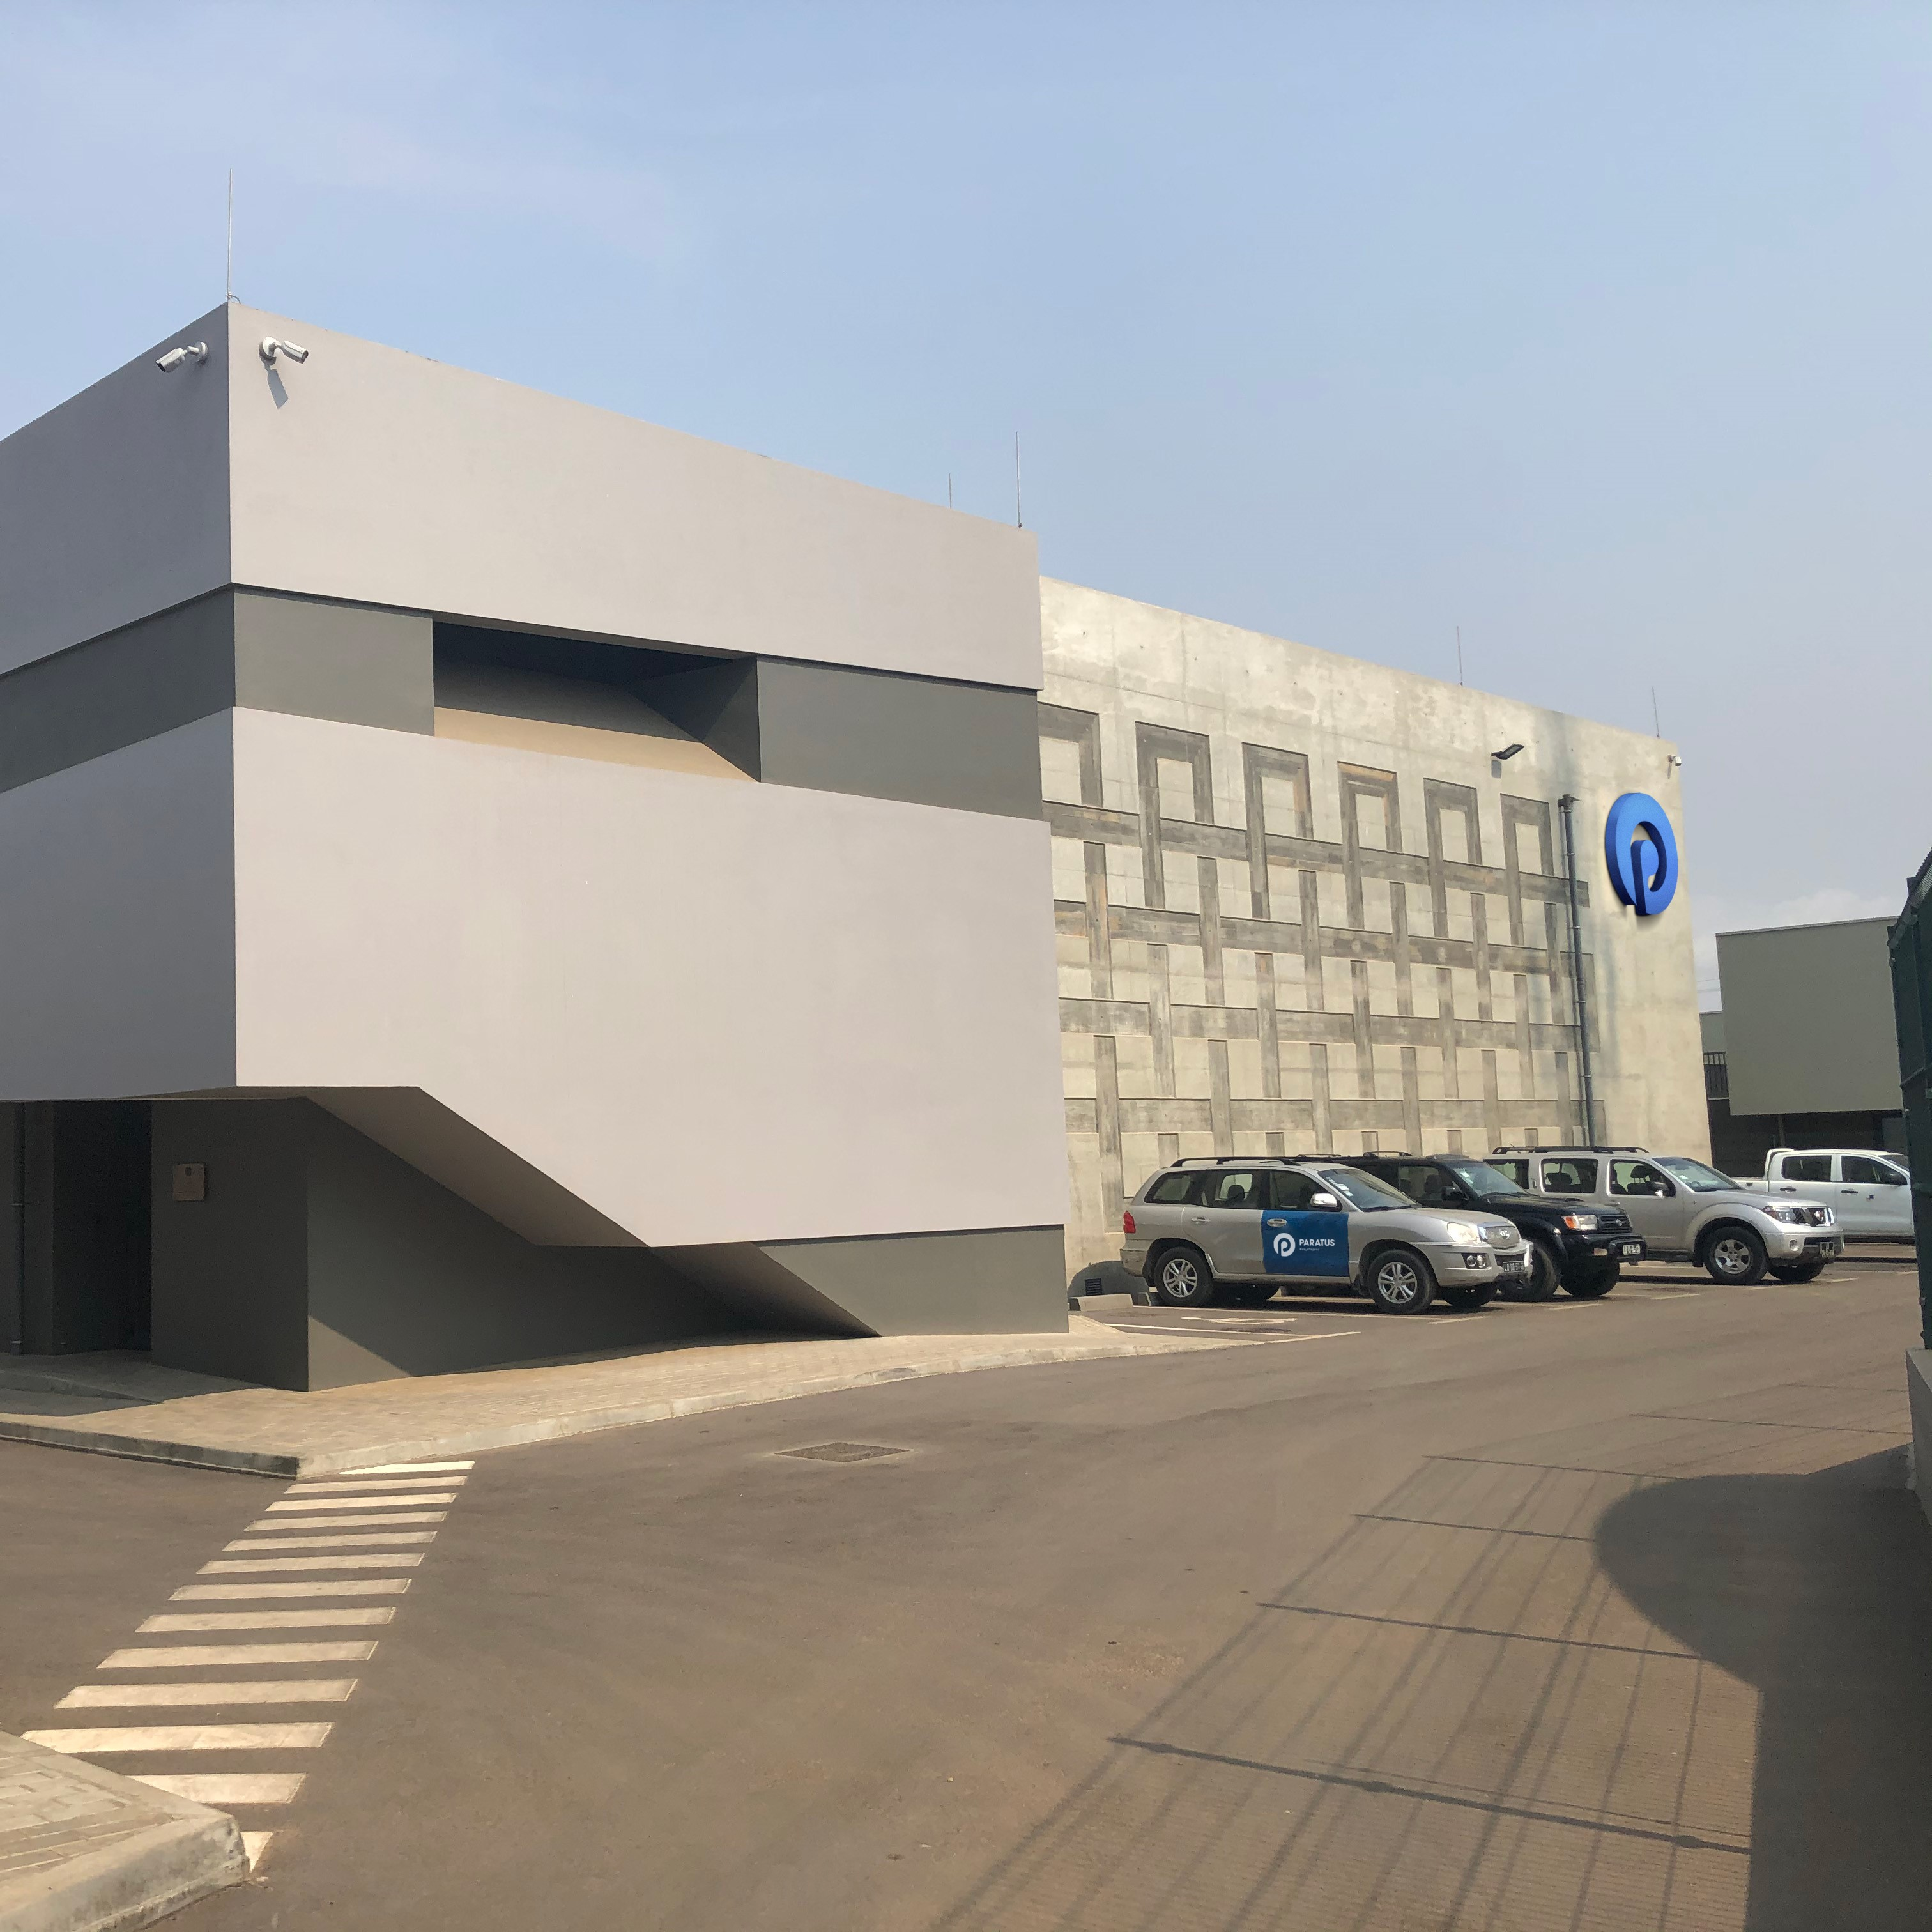 Paratus Africa Rolls Out Another Data Center, This Time In Zambia